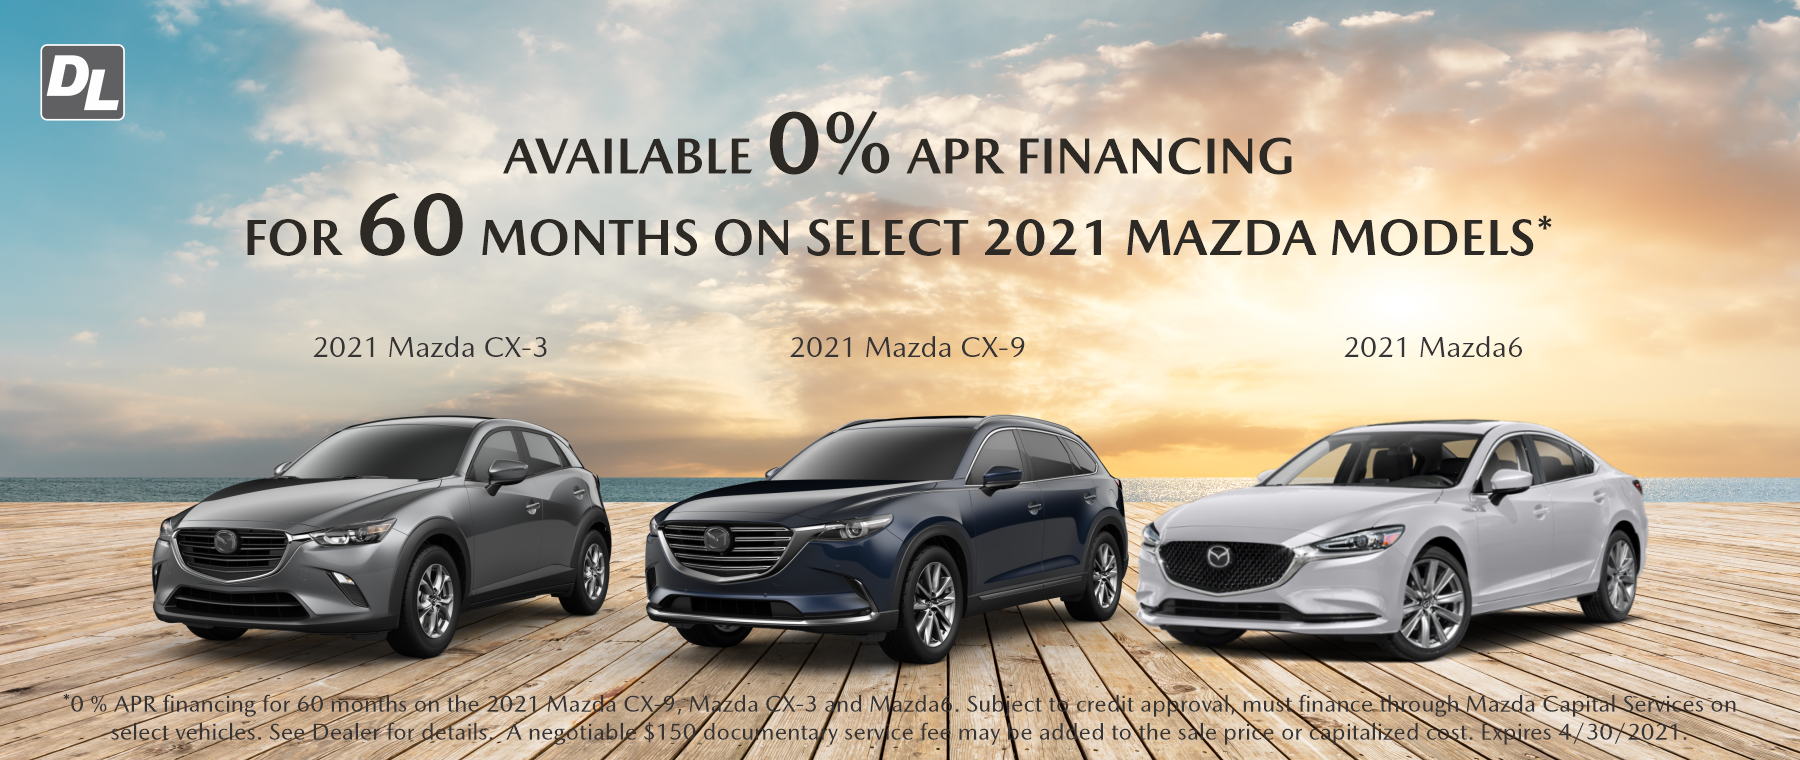 2021AprilBanners-Mazda-0for60